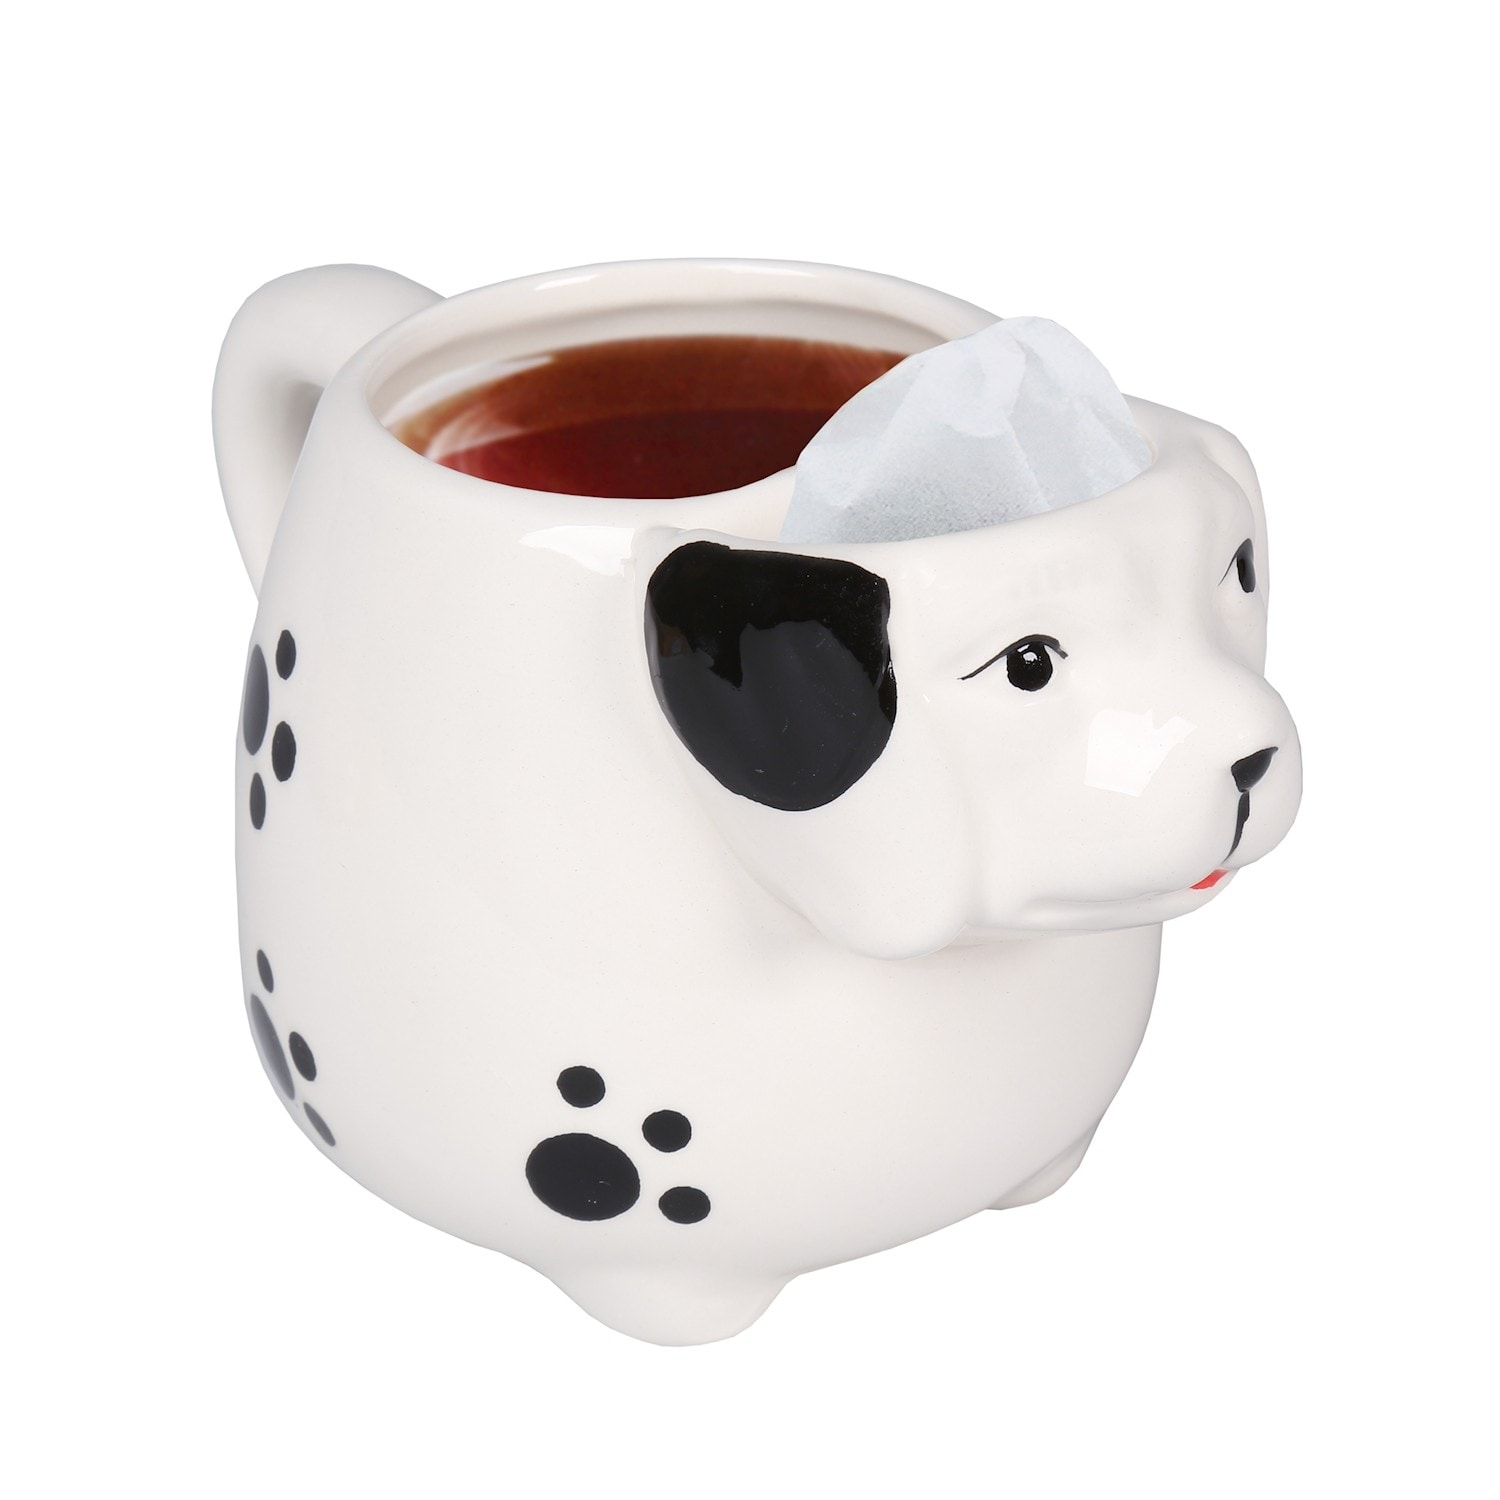 Animal Shaped Tea Mugs Cute Ceramic Elephant Puppy Dog Cat Or Owl Cup 7 5 In X 5 5 In X 5 In Overstock 25480923